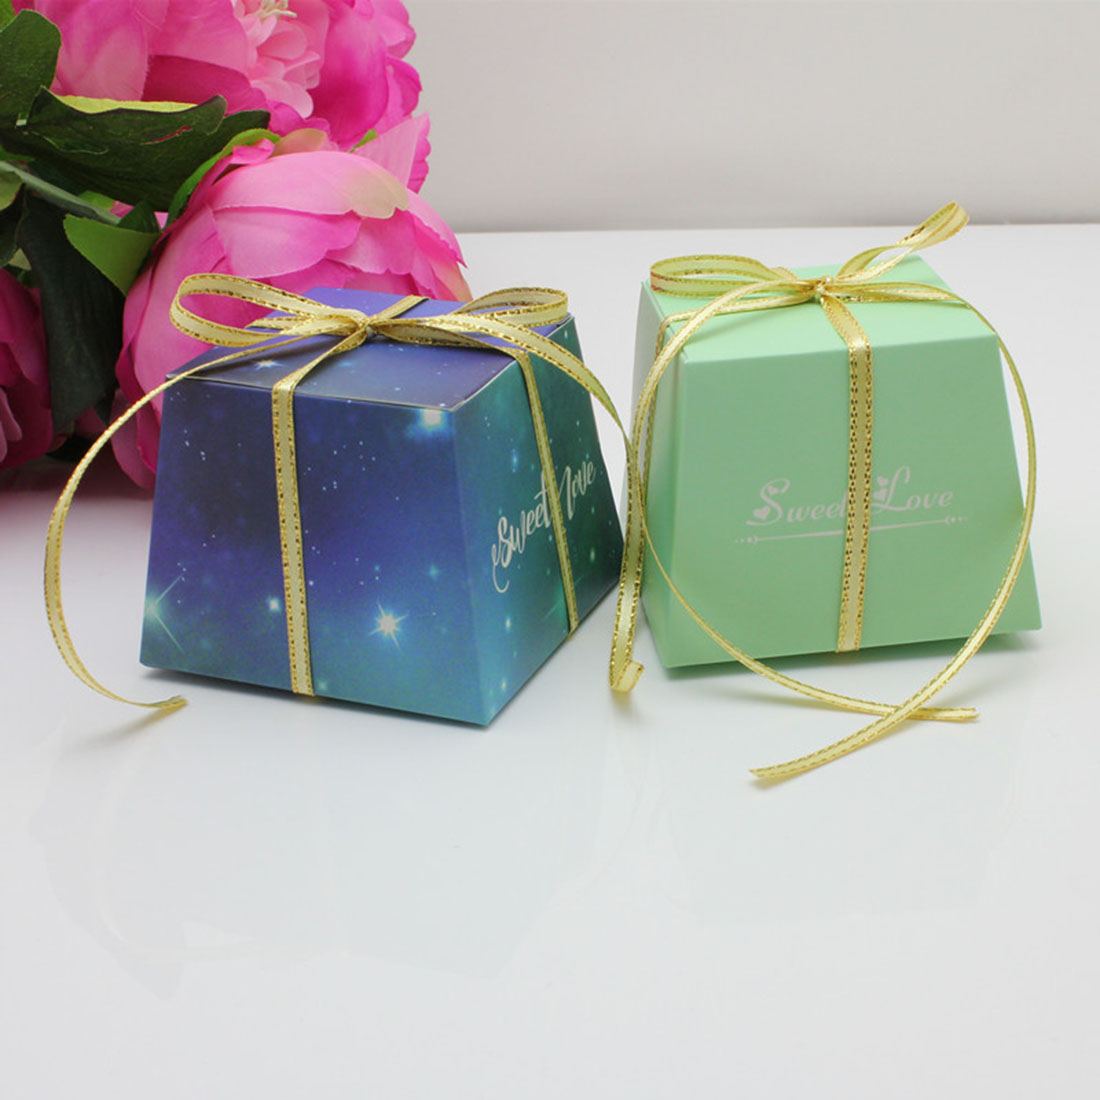 Top 100 Wedding Gifts: 100pcs/lot Romantic Star Gifts Boxes Party Candy Chocolate